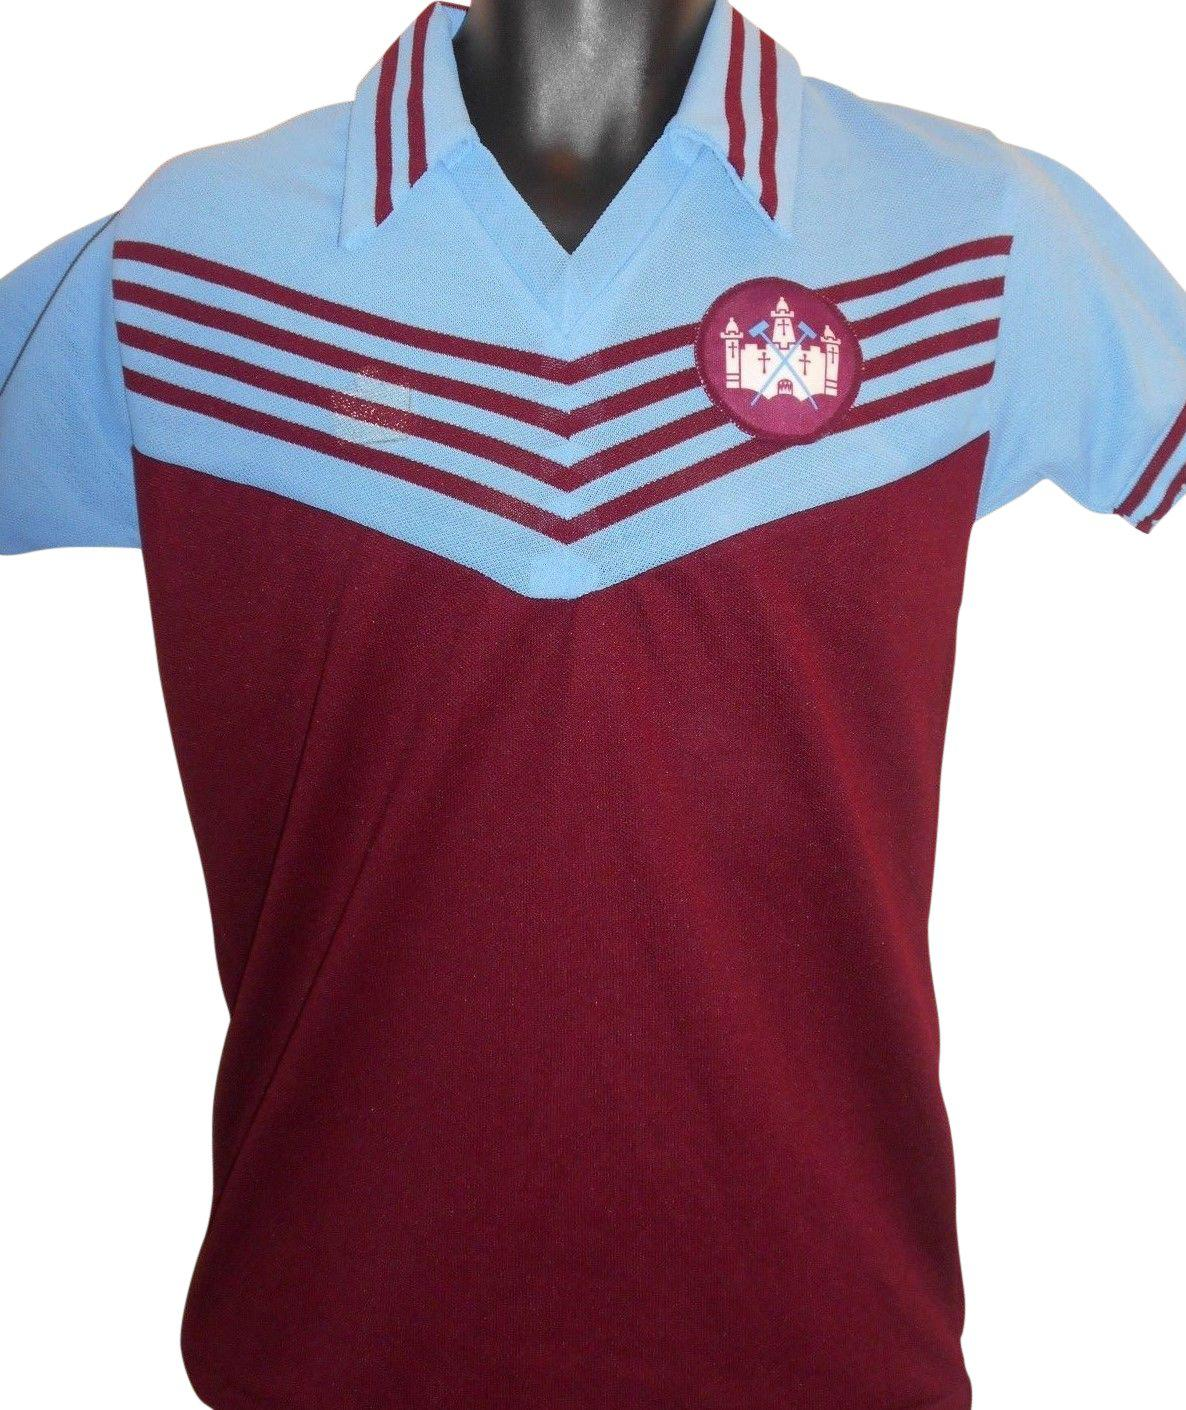 West Ham United Home football Shirt 2007 2008 3xl men s MA632 - Classic  Clothing Crib 34bdfd29a